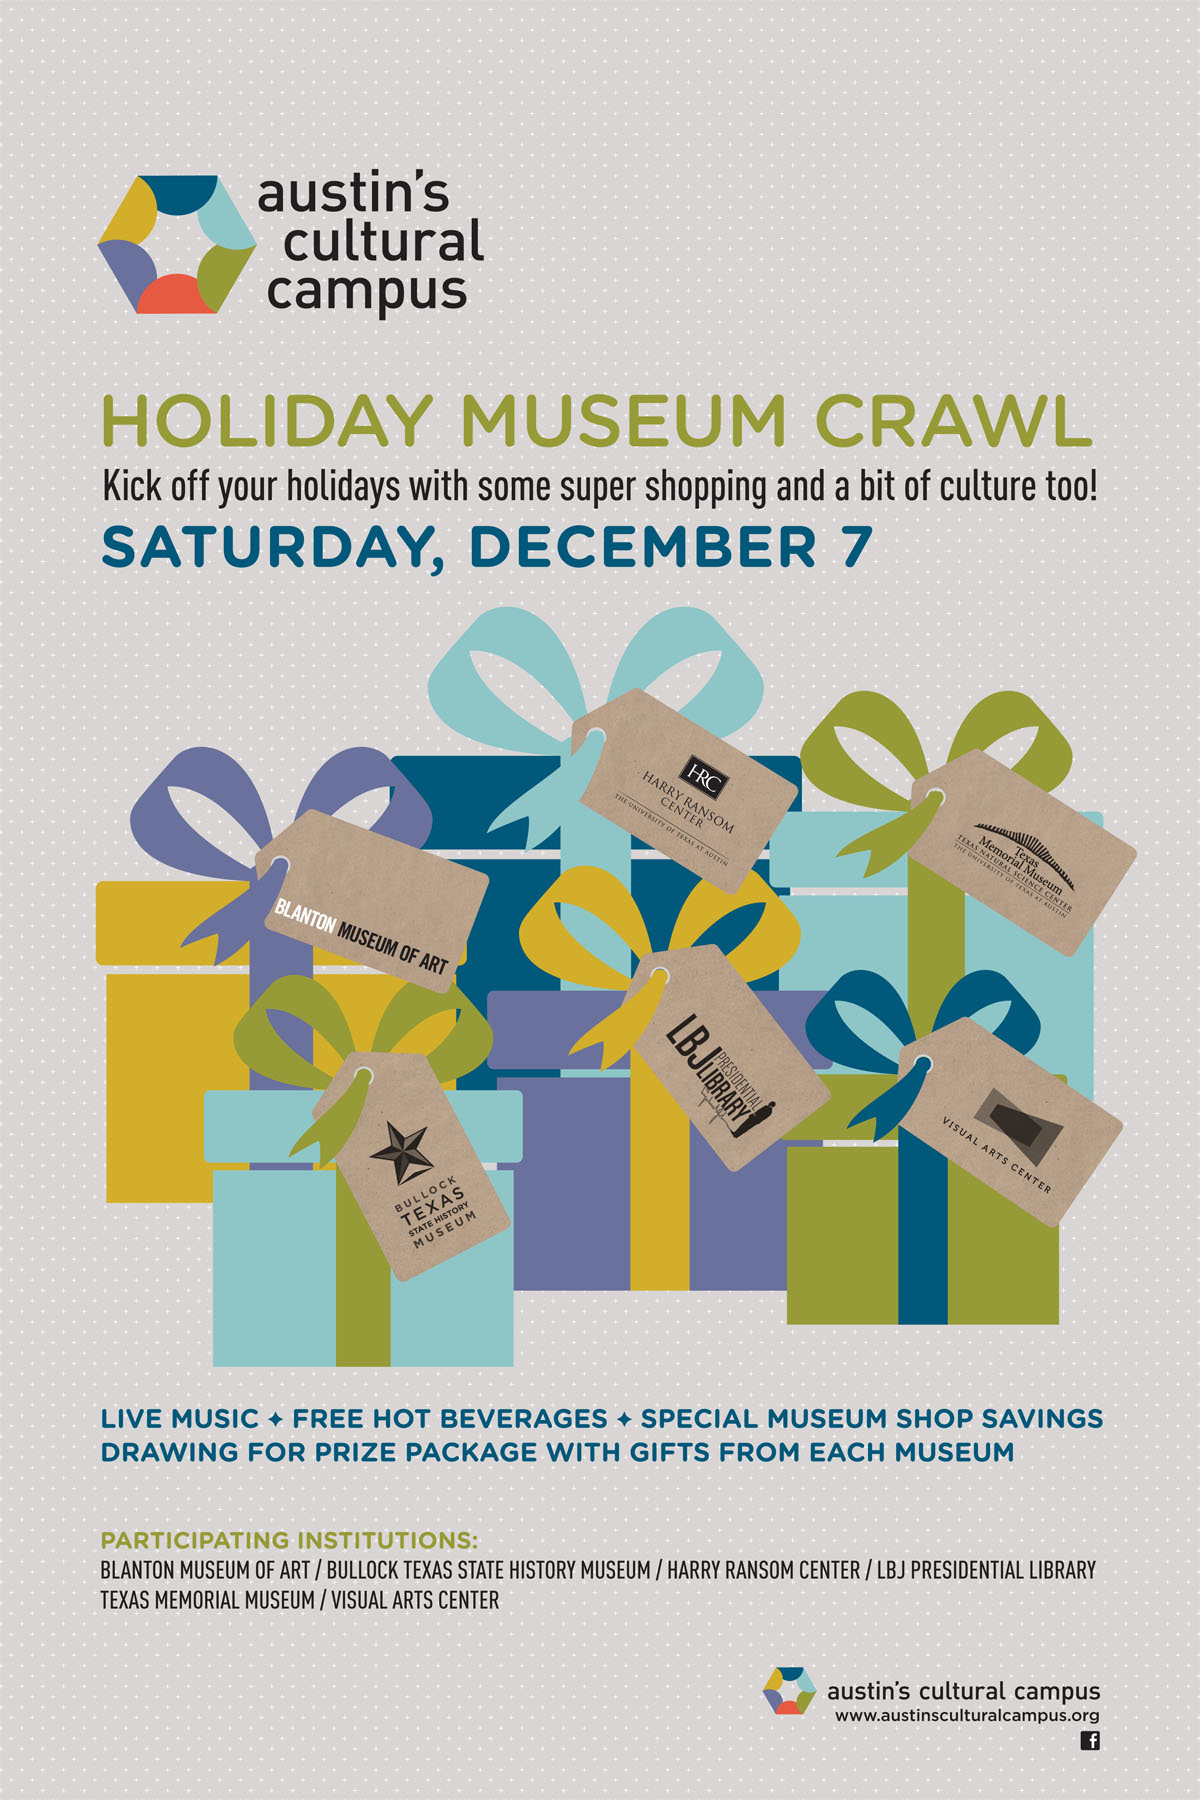 Austin's Cultural Campus hosts holiday crawl this Saturday